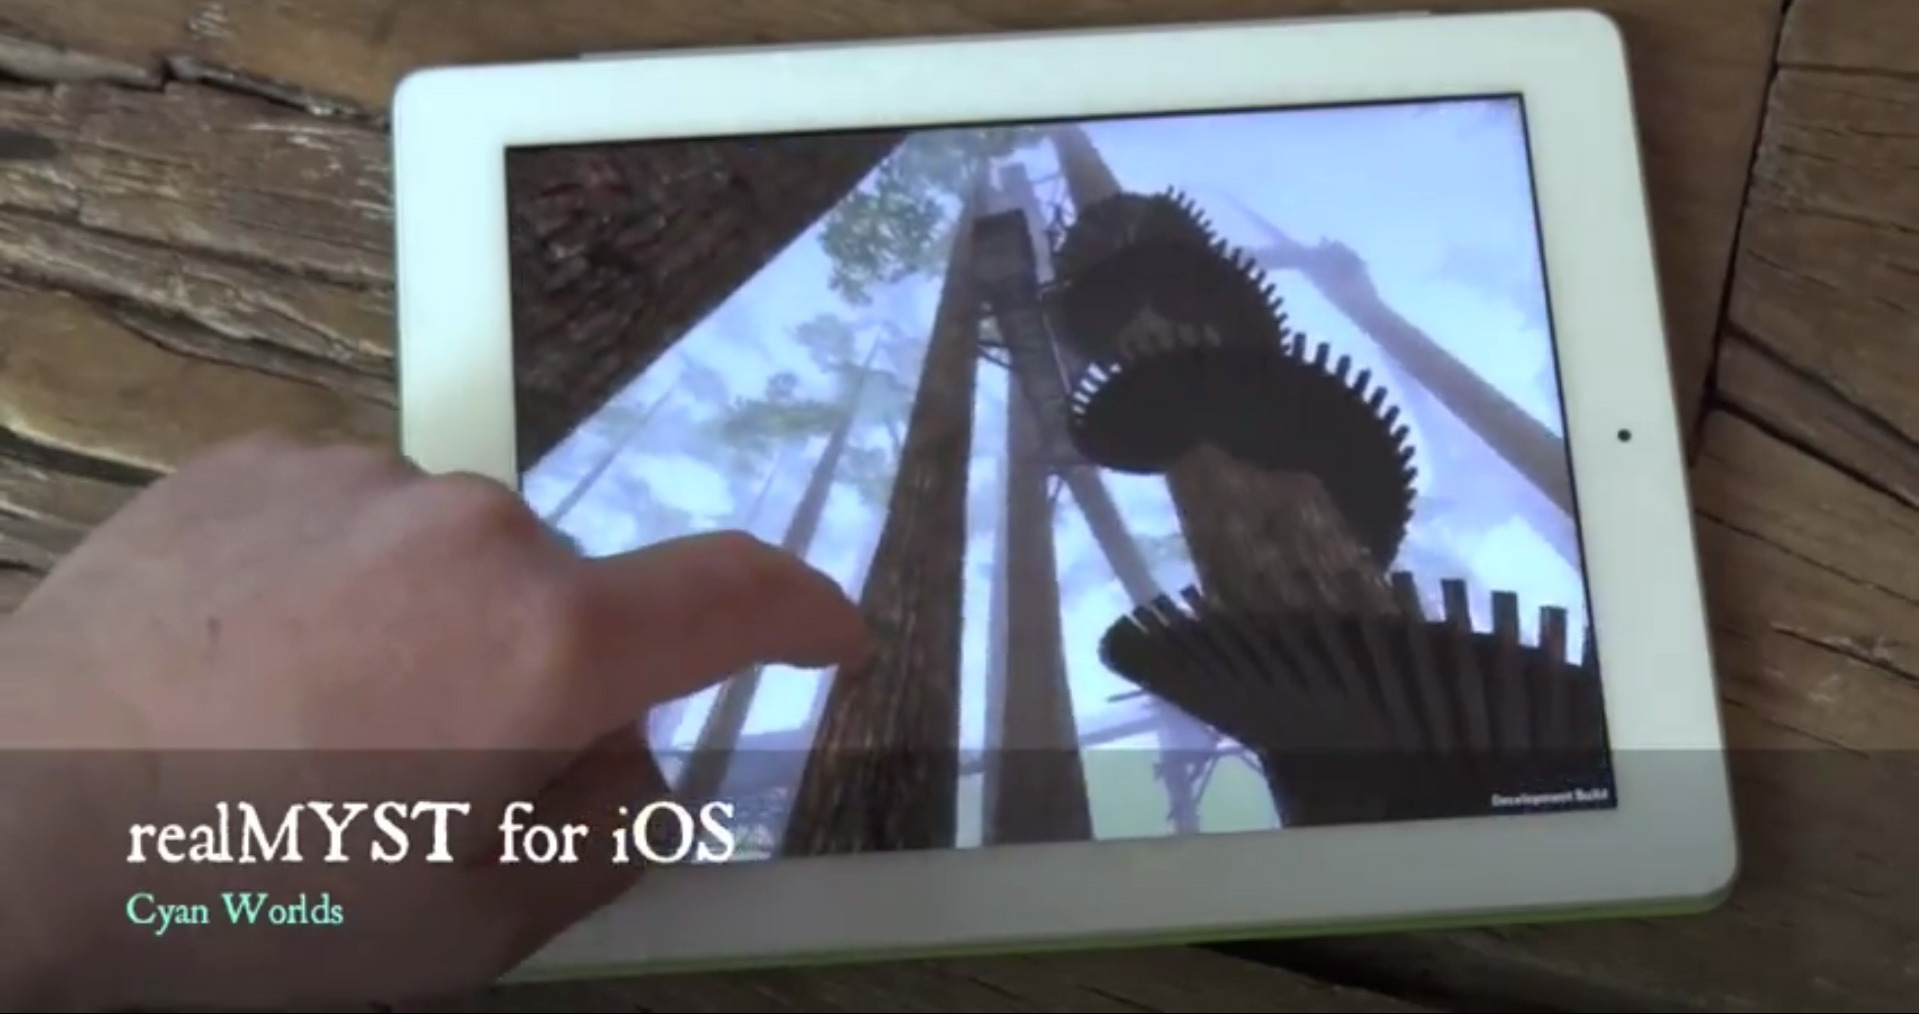 Cyan Worlds bringing realMyst to second- and third-gen iPad this Thursday